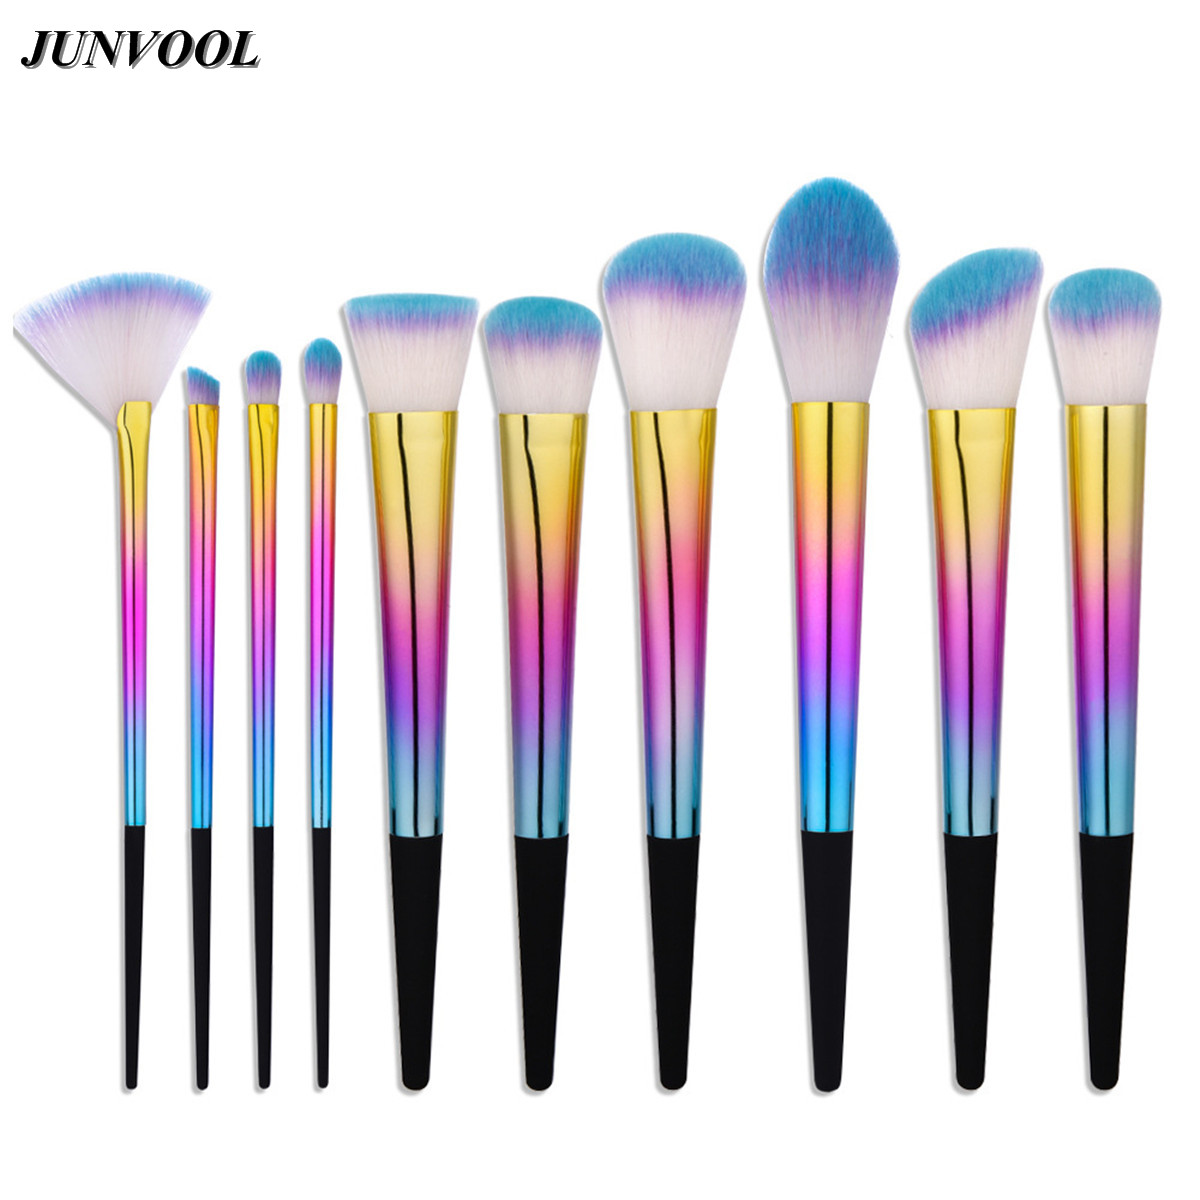 Fan Cosmetic Makeup Brushes Set 10pcs Dazzle Color Facial Cheek Eyebrow Eyeshadow Powder Foundation Brush Pincel Maquiagem